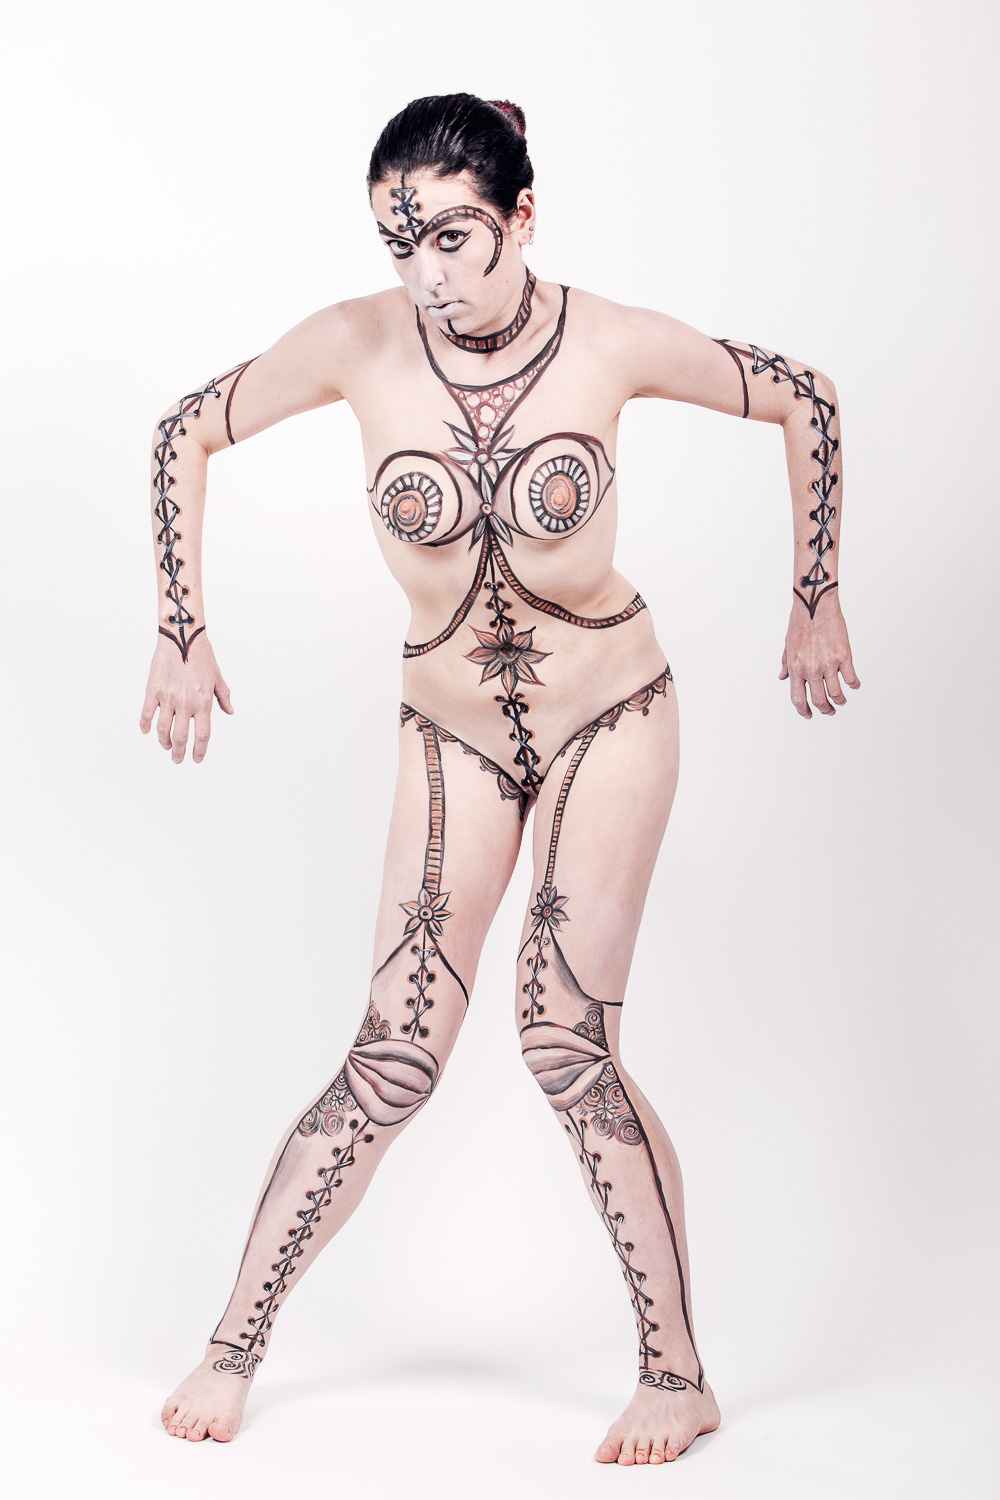 photo de bodypainting en studio